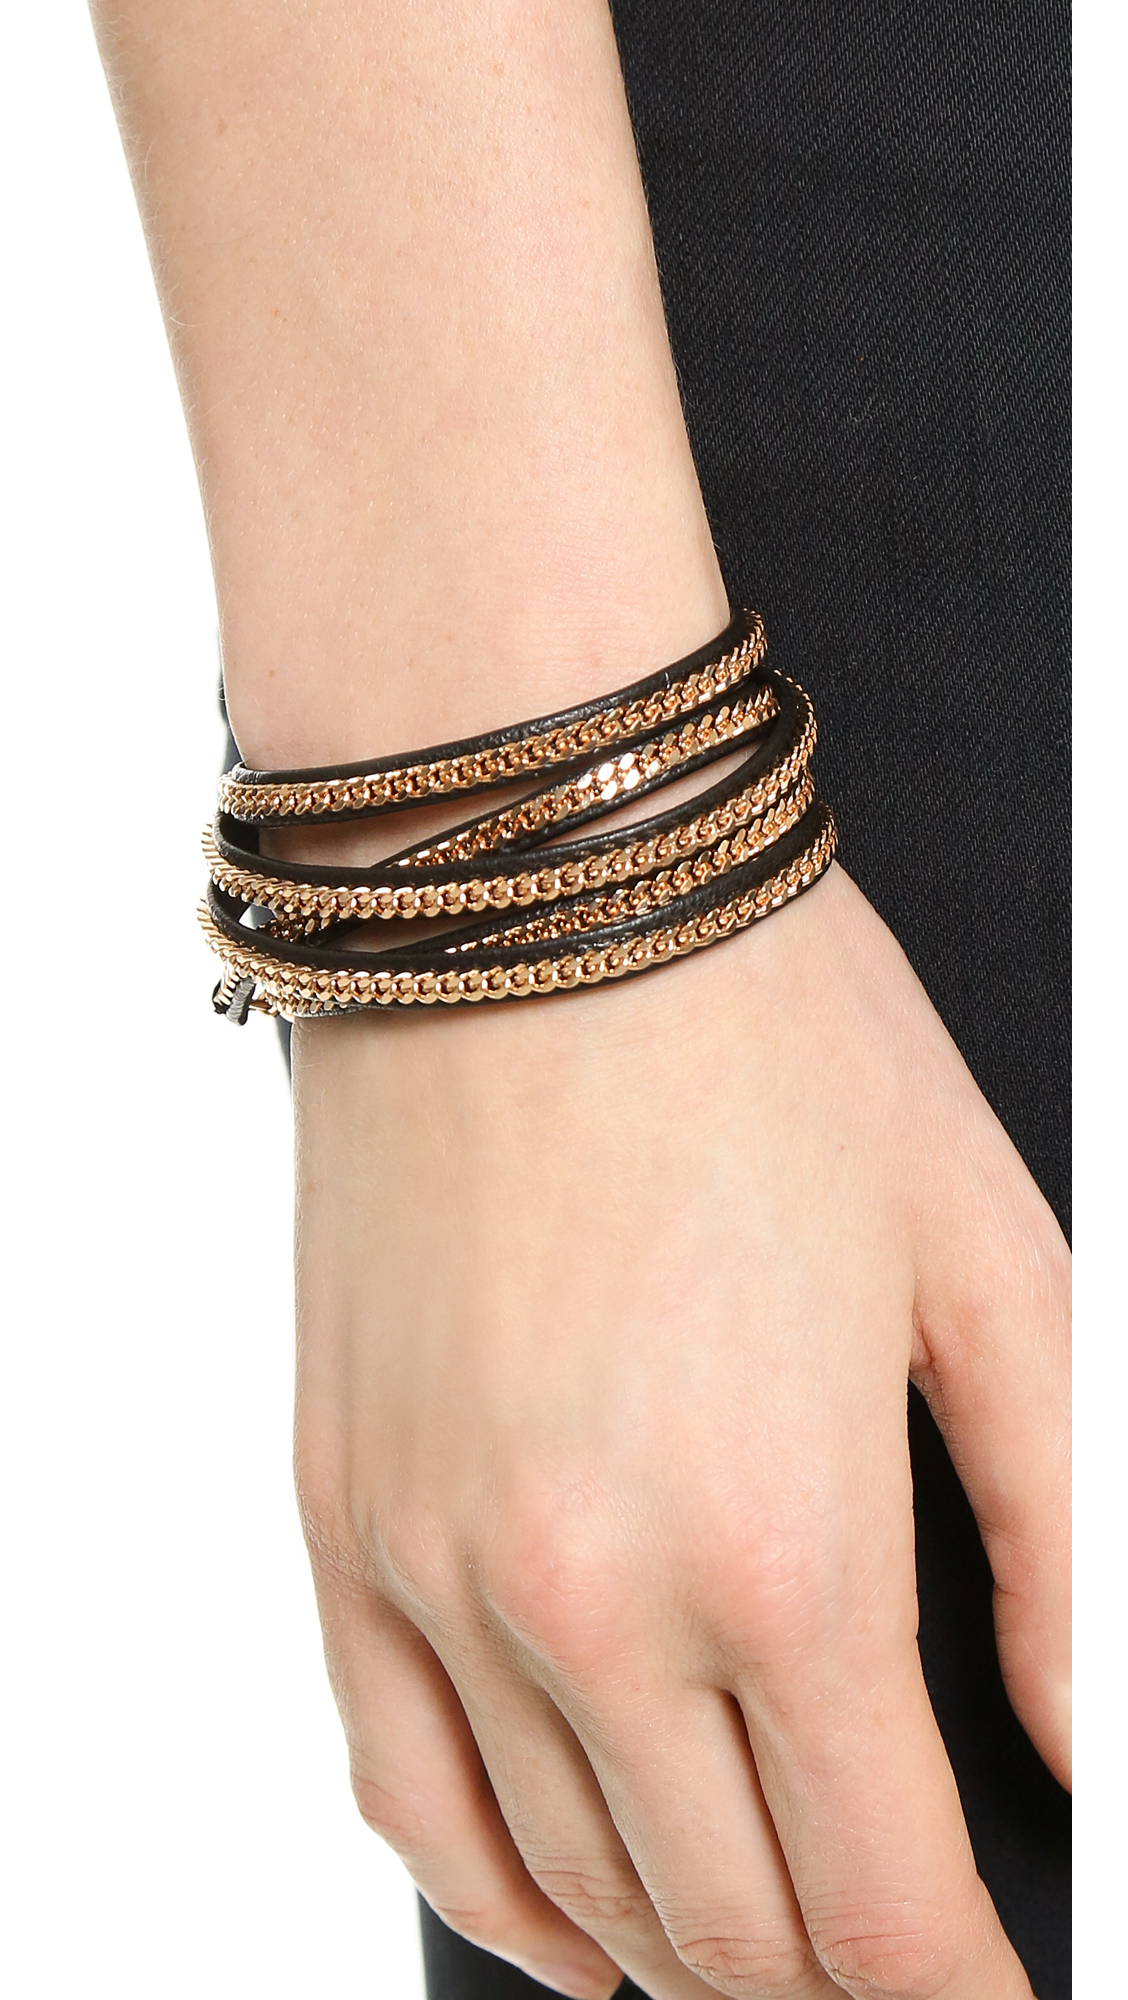 bracelet braceletfront flexh york barneys cord wrap pdp new beads m cohen product knotted on bracelets